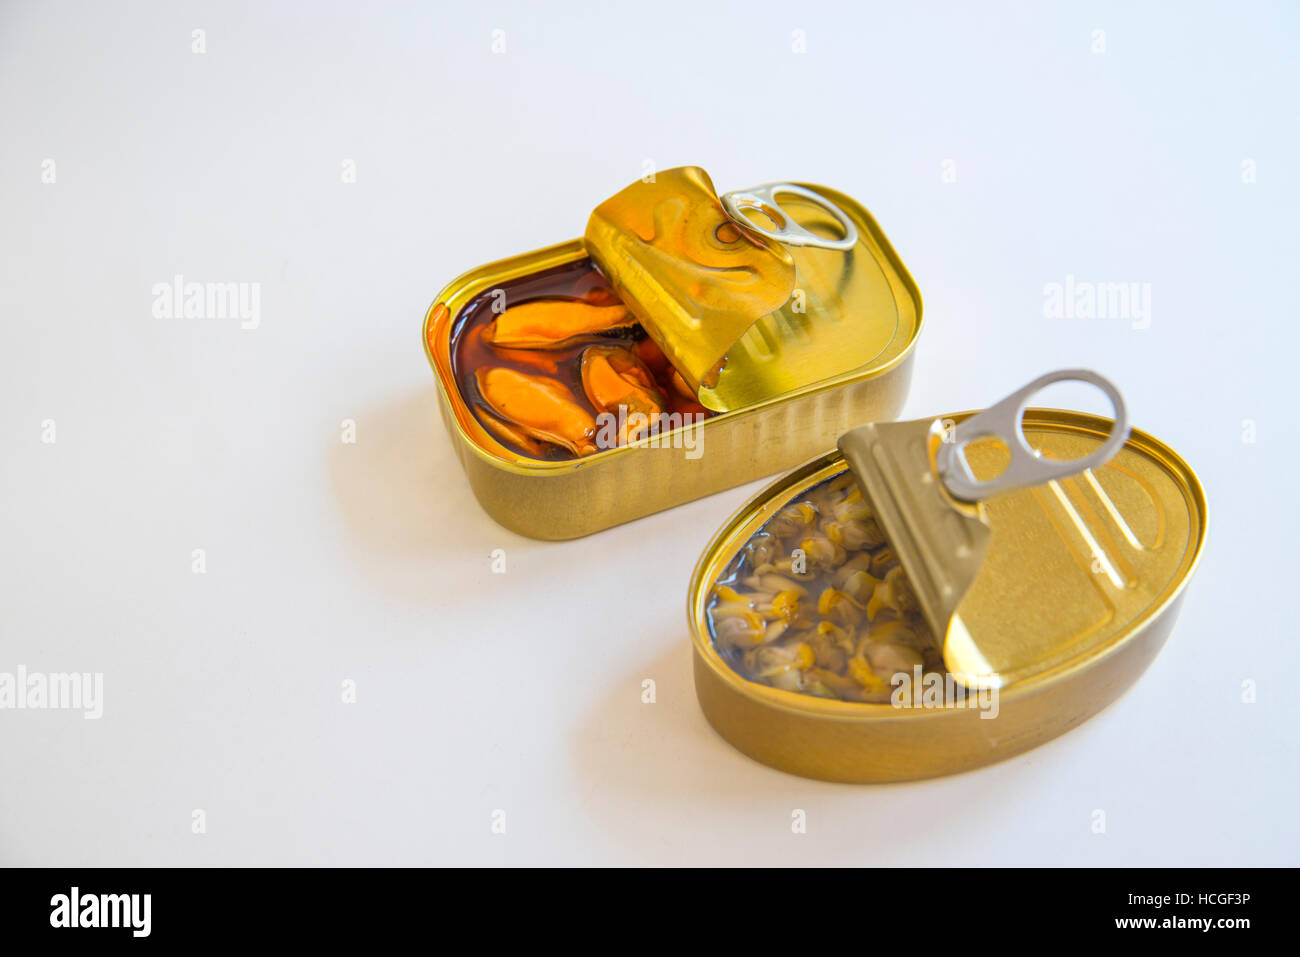 Tins of marinade mussels and common cockles. - Stock Image